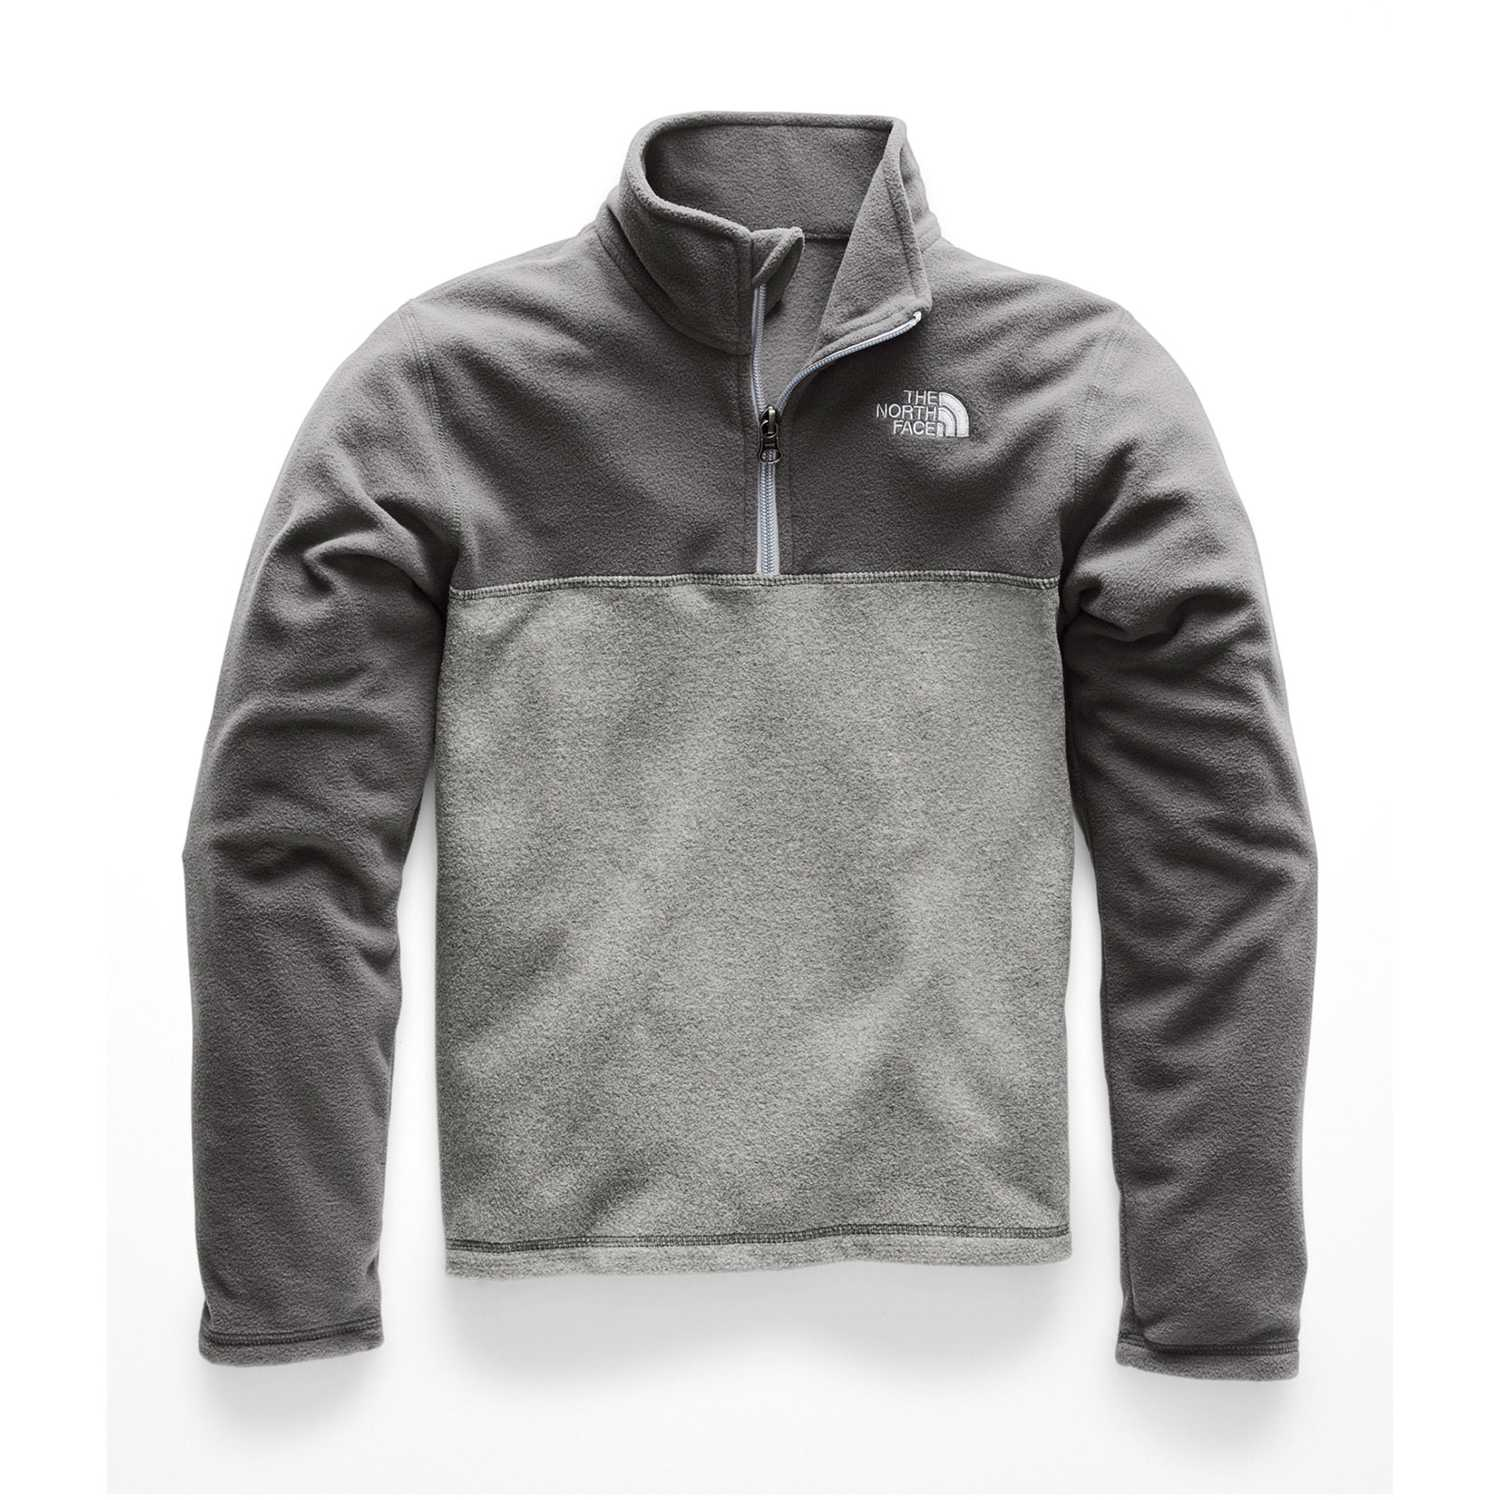 The North Face b glacier 1/4 zip Plomo / gris Hoodies Deportivos